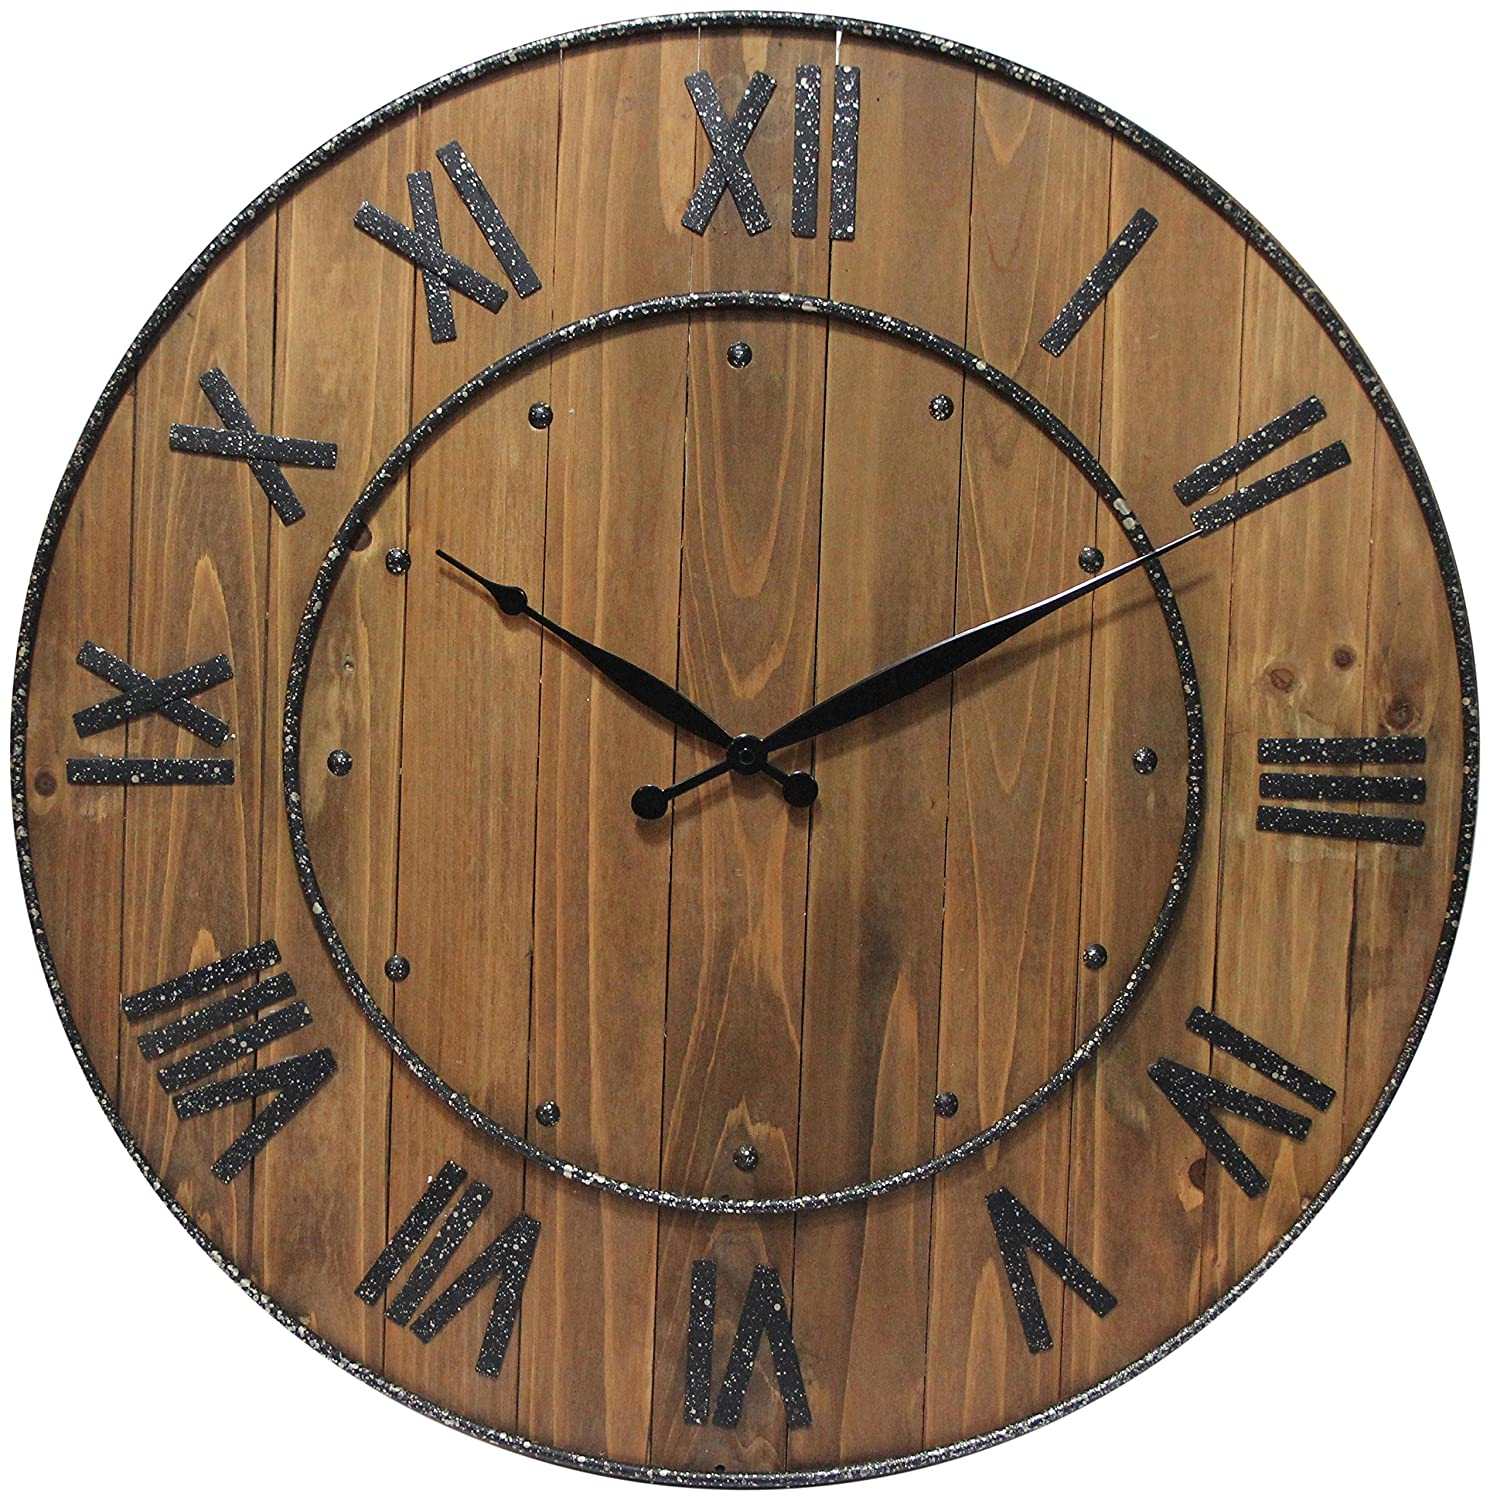 Amazon infinity instruments wine barrel 24 in wall clock amazon infinity instruments wine barrel 24 in wall clock home kitchen amipublicfo Gallery